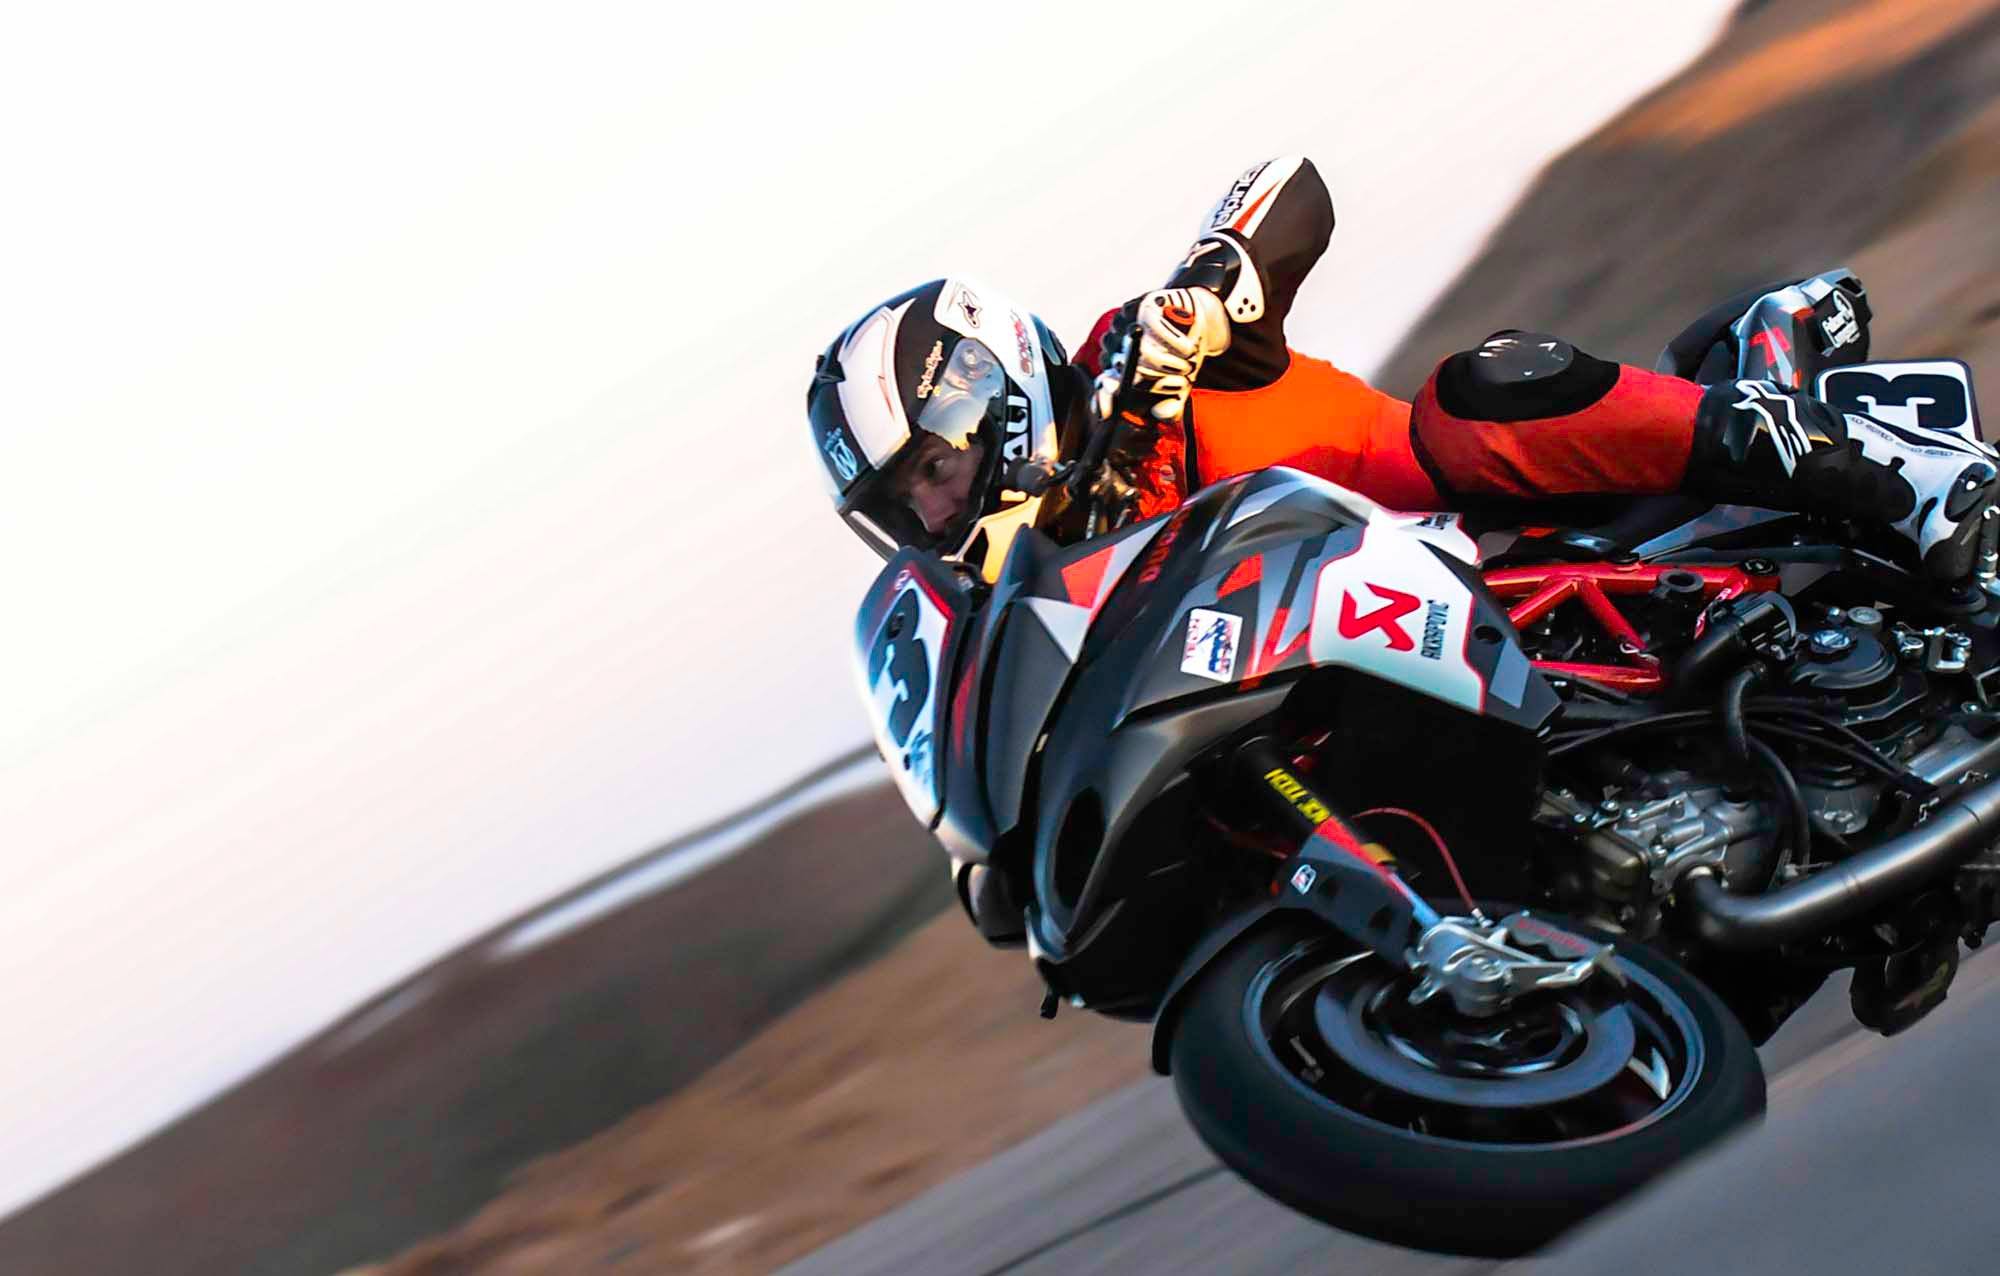 Welcome to the Ducati Corse world